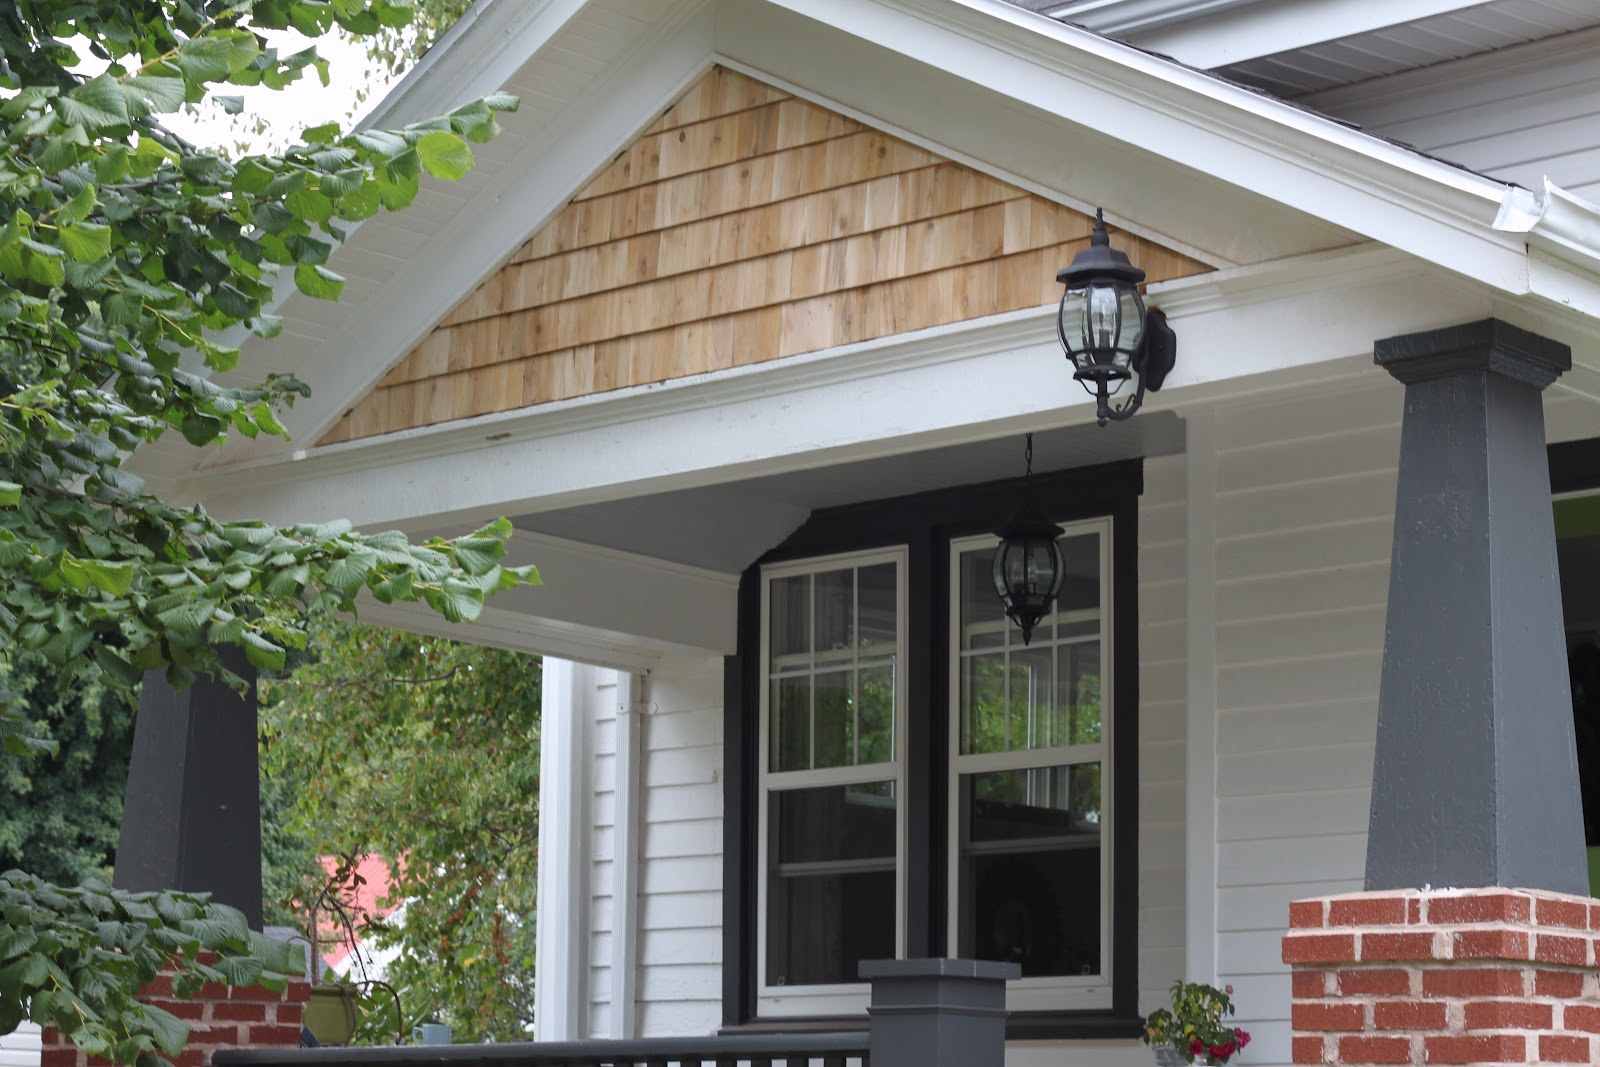 Modern jane porch gable update Craftsman style gables